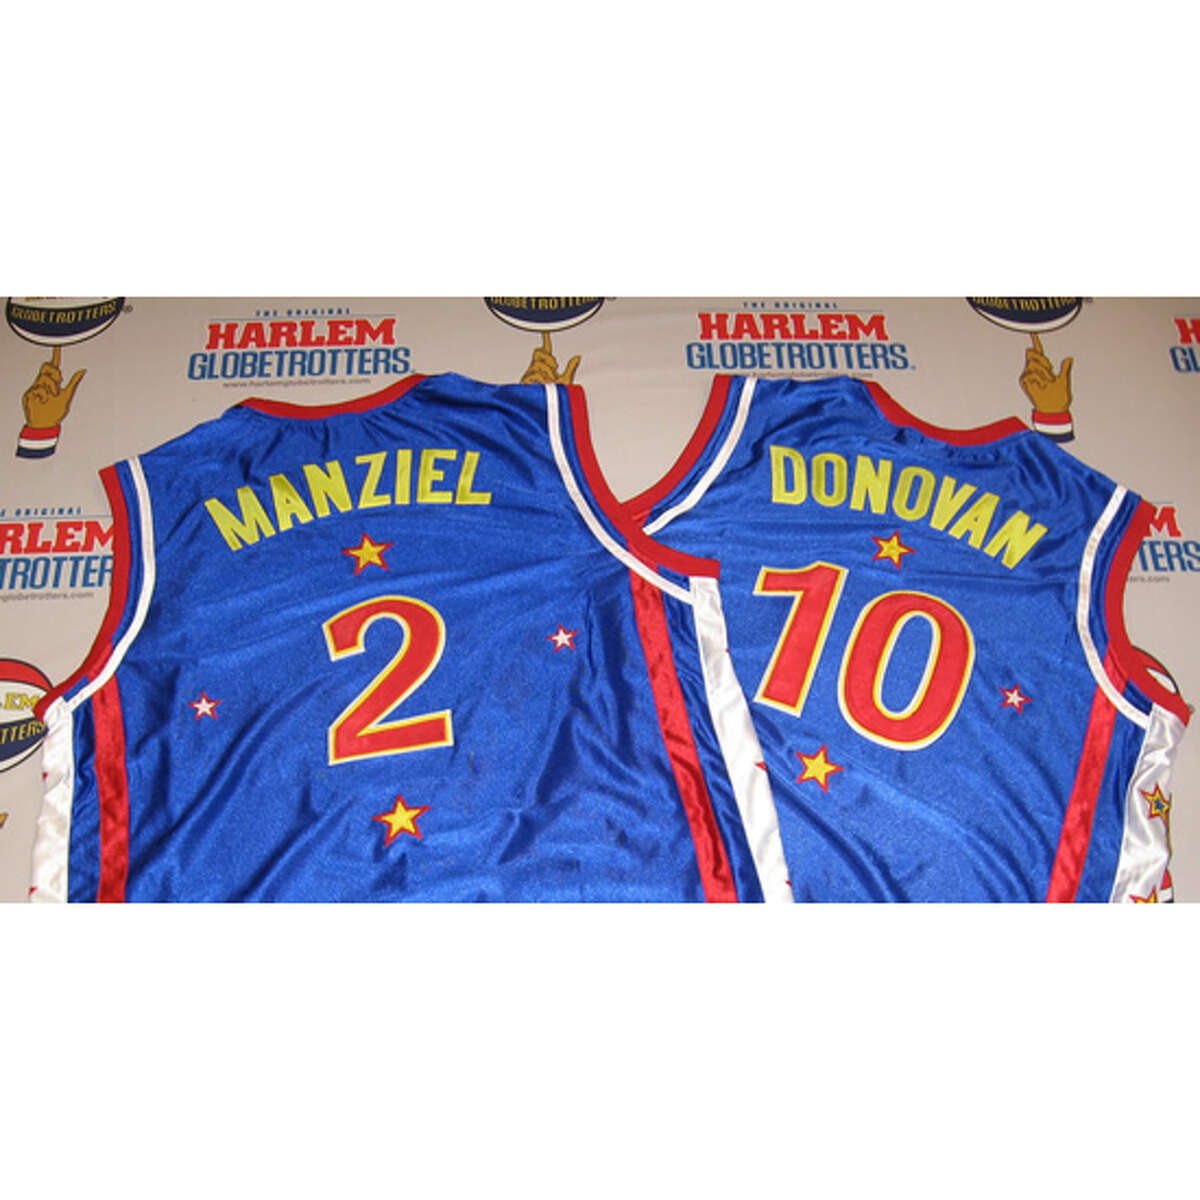 Johnny Manziel and Landon Donovan were drafted by the Harlem Globetrotters today.